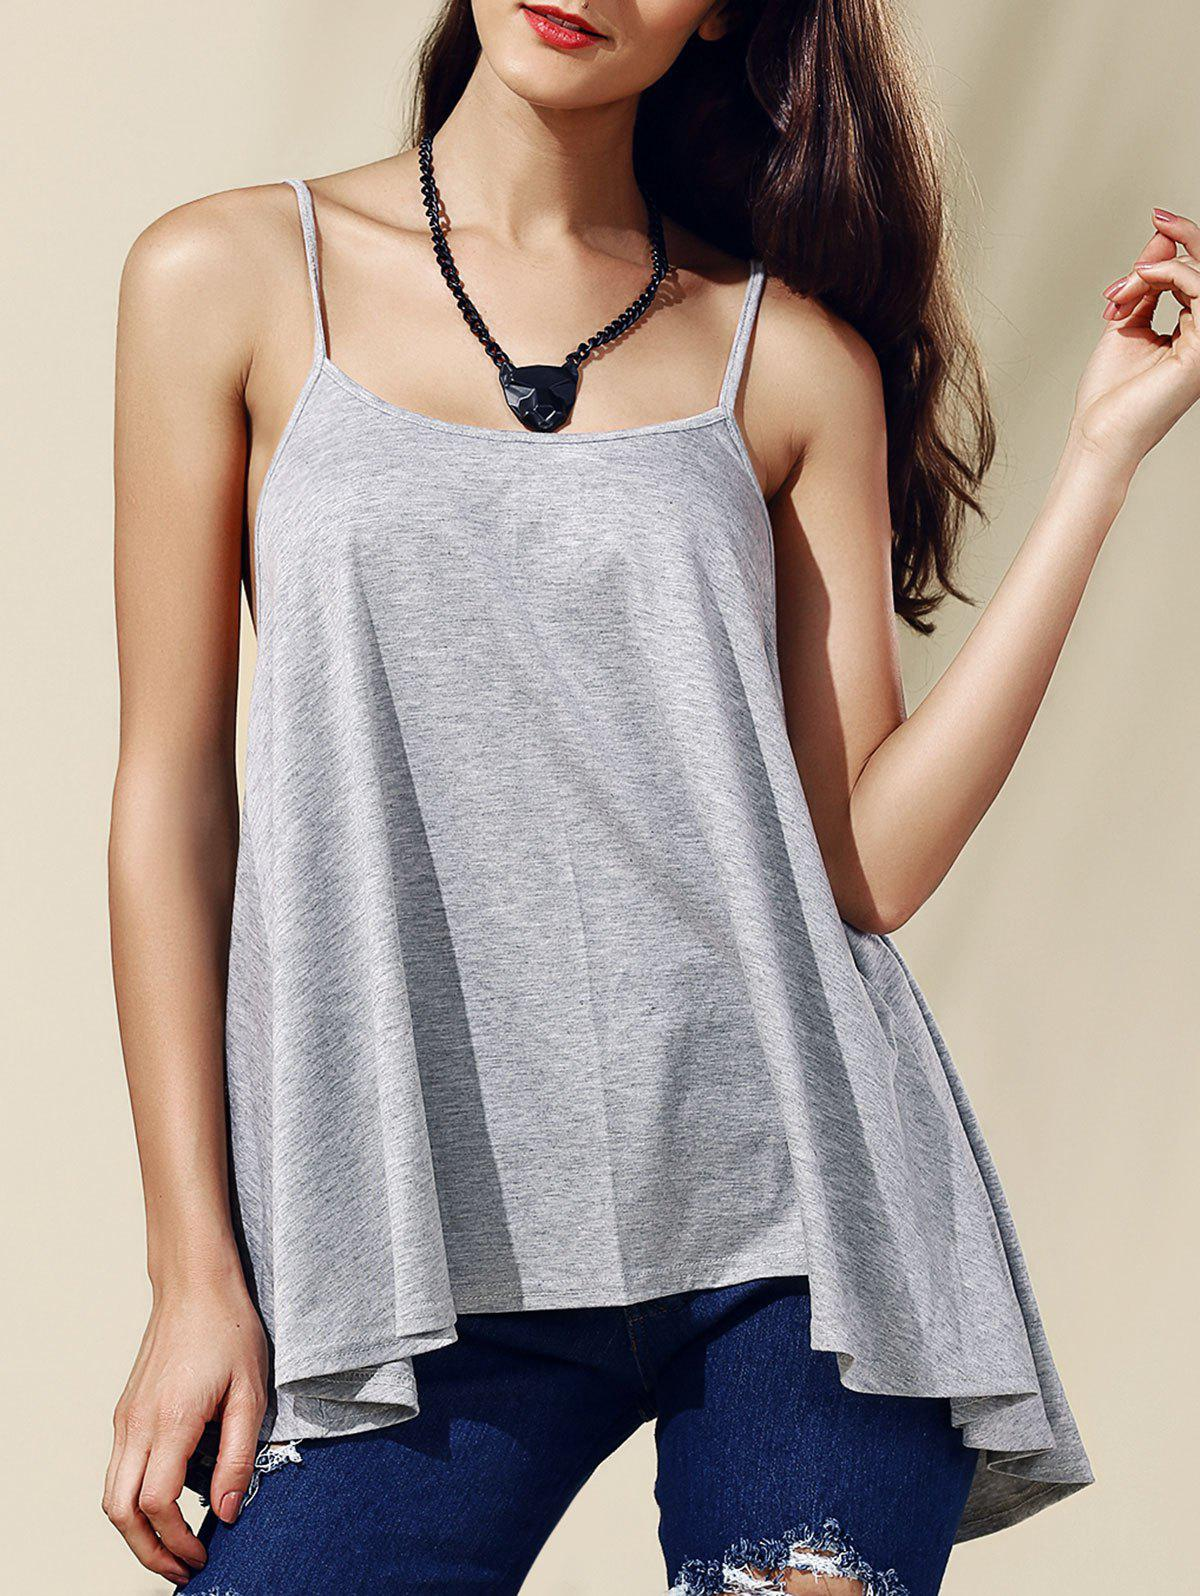 Stylish Backless Pure Color Spaghetti Strap Tank Top For Women - GRAY 2XL